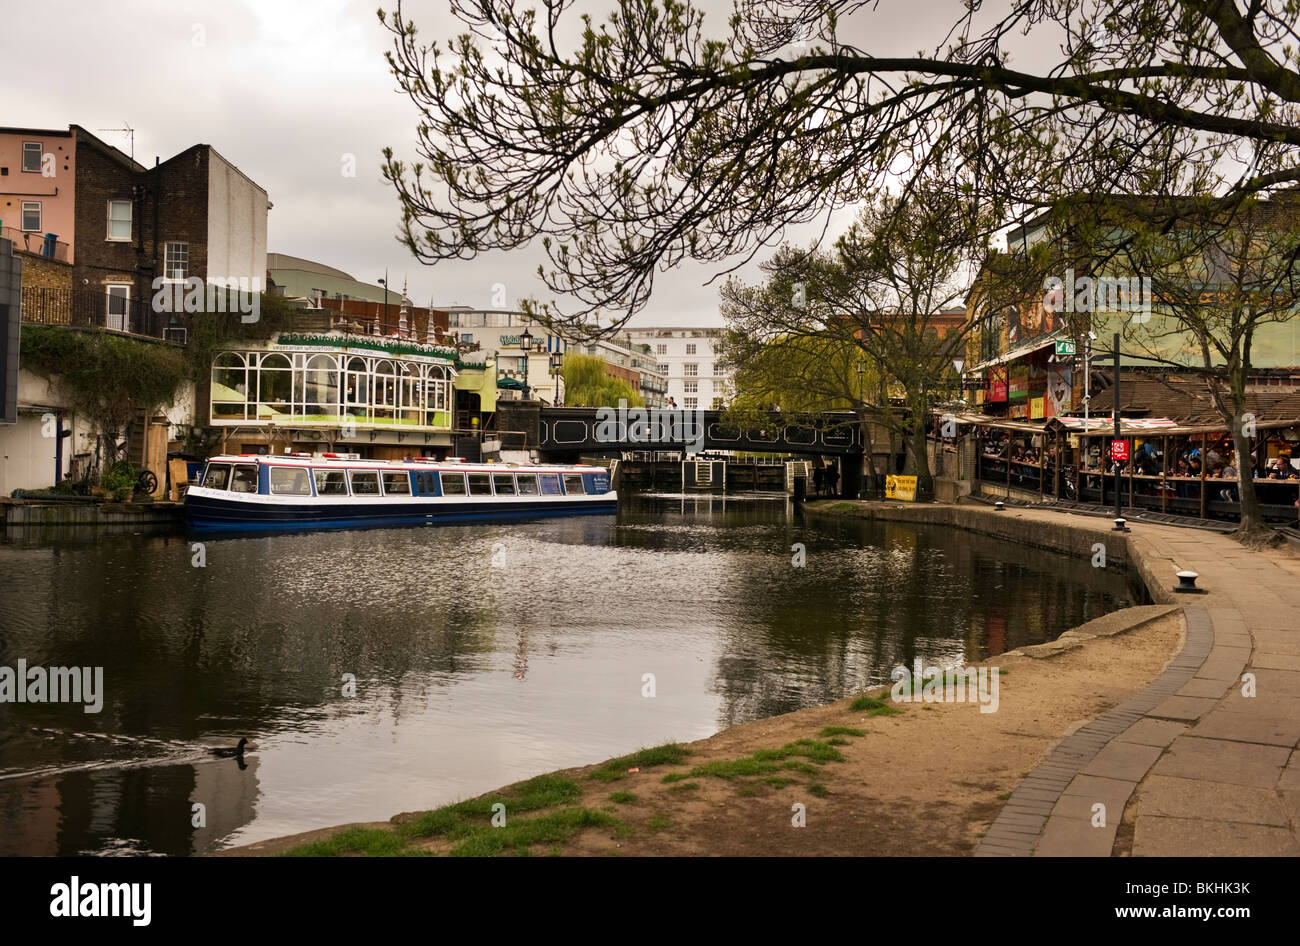 A  view of Regents canal and towpath a London waterway towards a footbridge over Camden Lock. - Stock Image